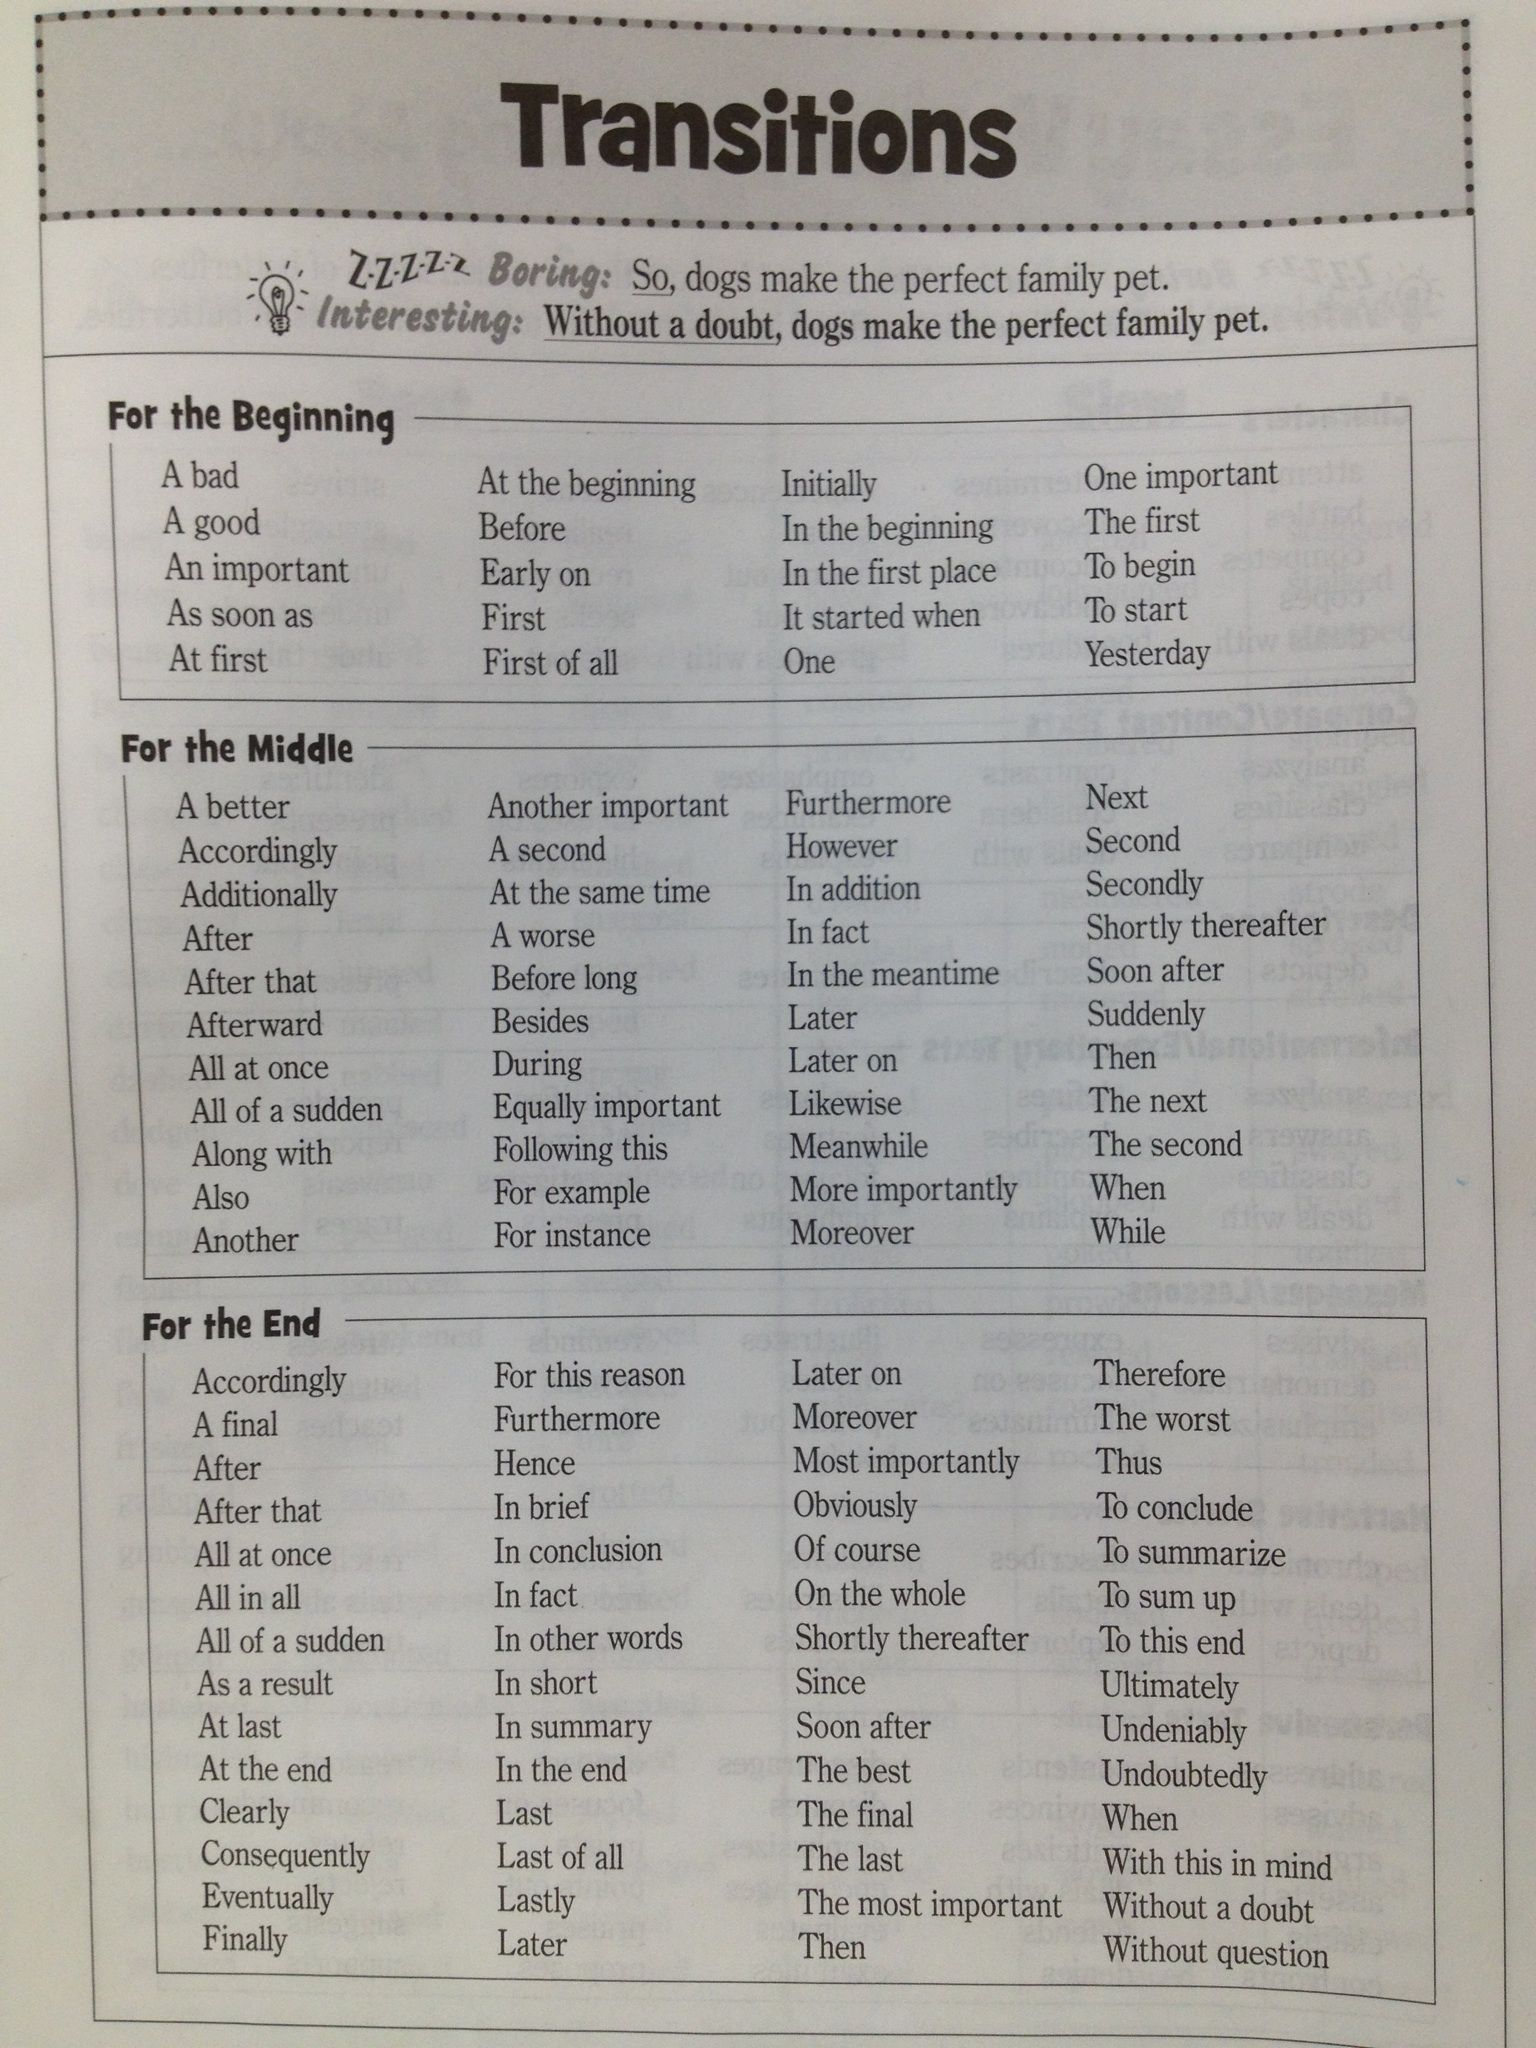 transitional words reference sheet for writer s notebook transitional words reference sheet for writer s notebook